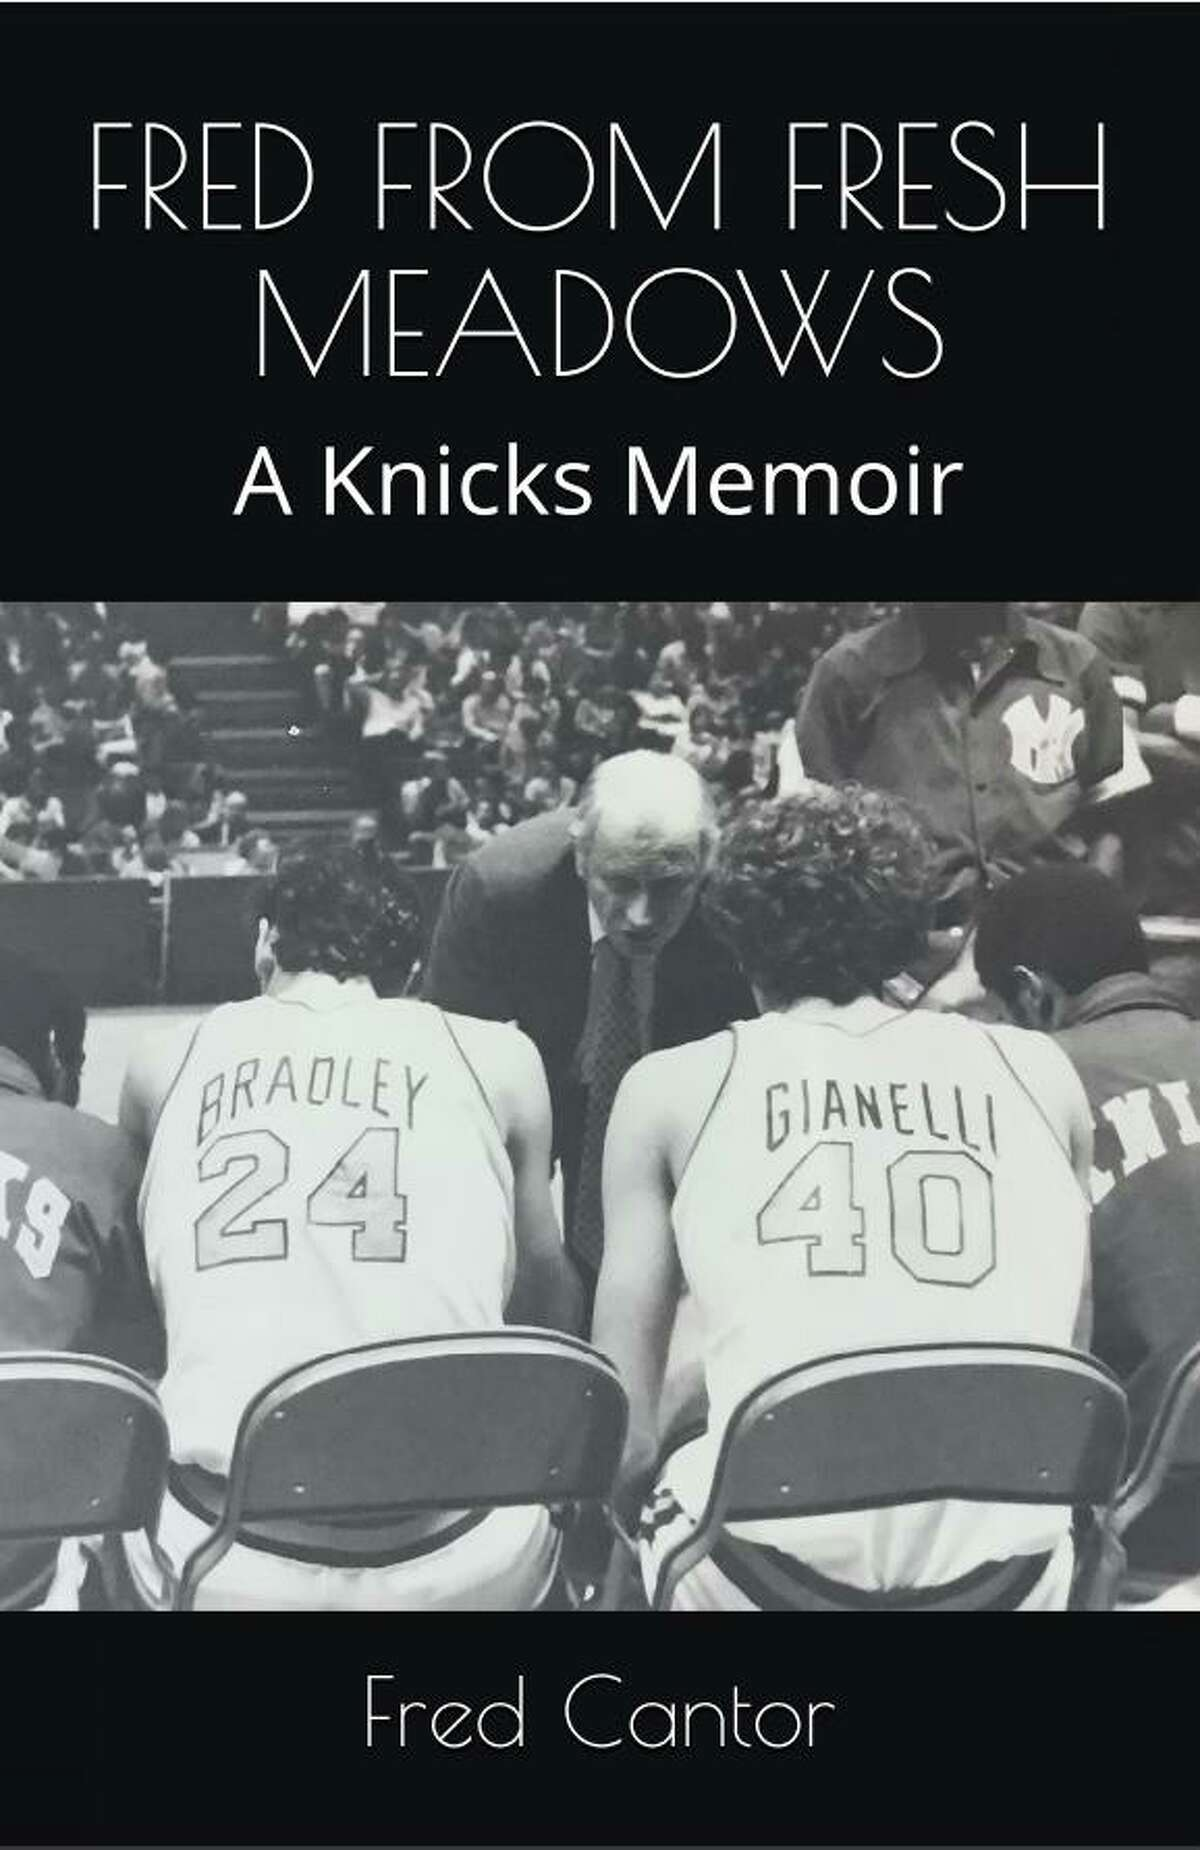 Westport resident Fred Cantor published a memoir about his life as a Knicks fan titled,